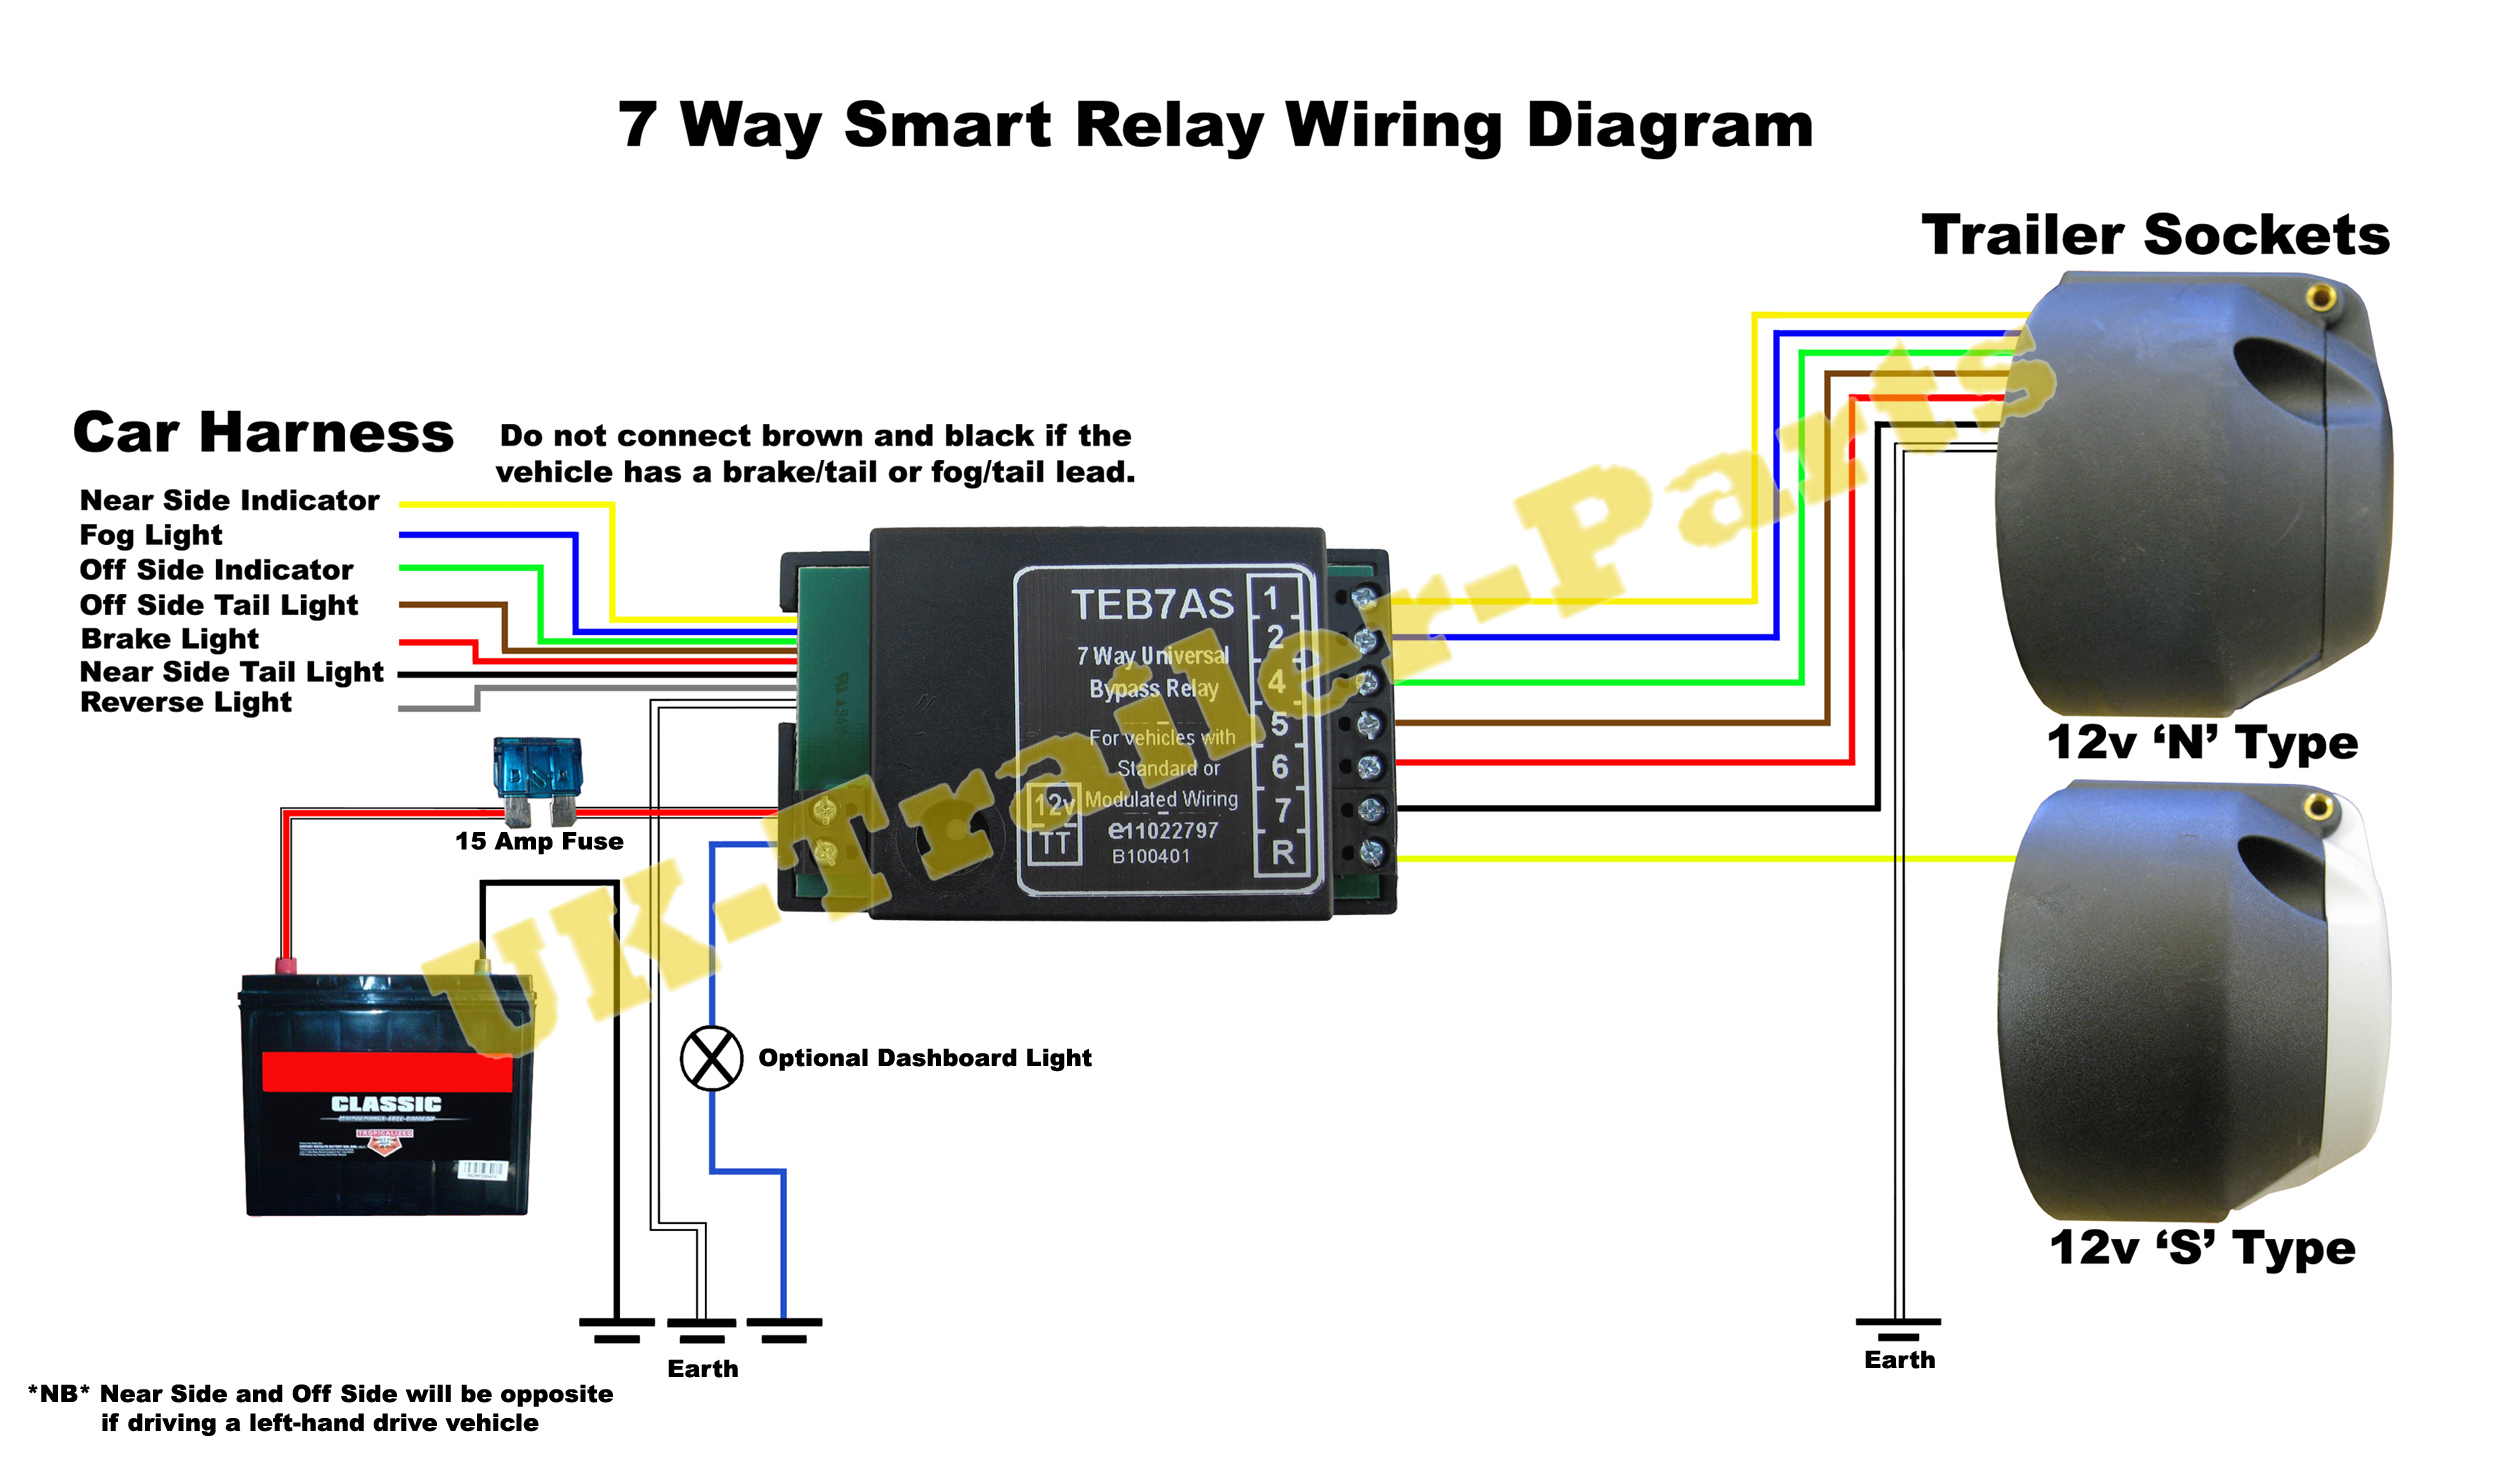 ... 7 way universal bypass relay wiring diagram uk trailer parts wiring diagram barber colman 2204 7  sc 1 st  MiFinder : trailer tail light wiring diagram - yogabreezes.com